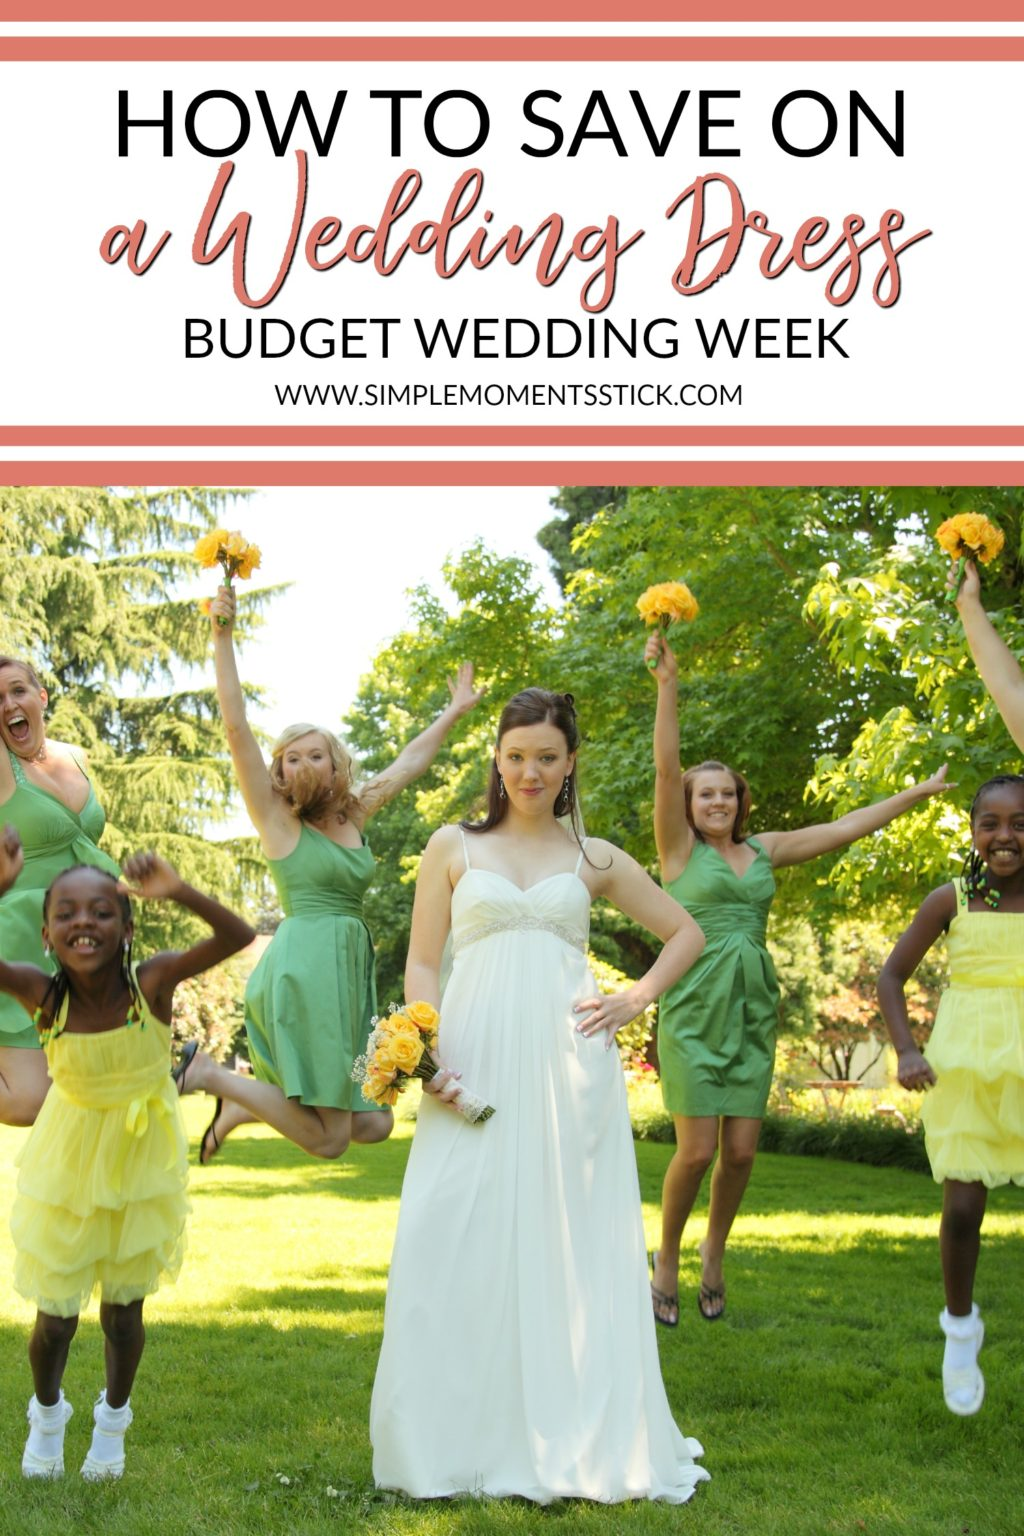 If you need to know how to save on a wedding dress, this post is for you! #wedding #budgetwedding #weddingdress #budgetweddingdress #weddingsaving